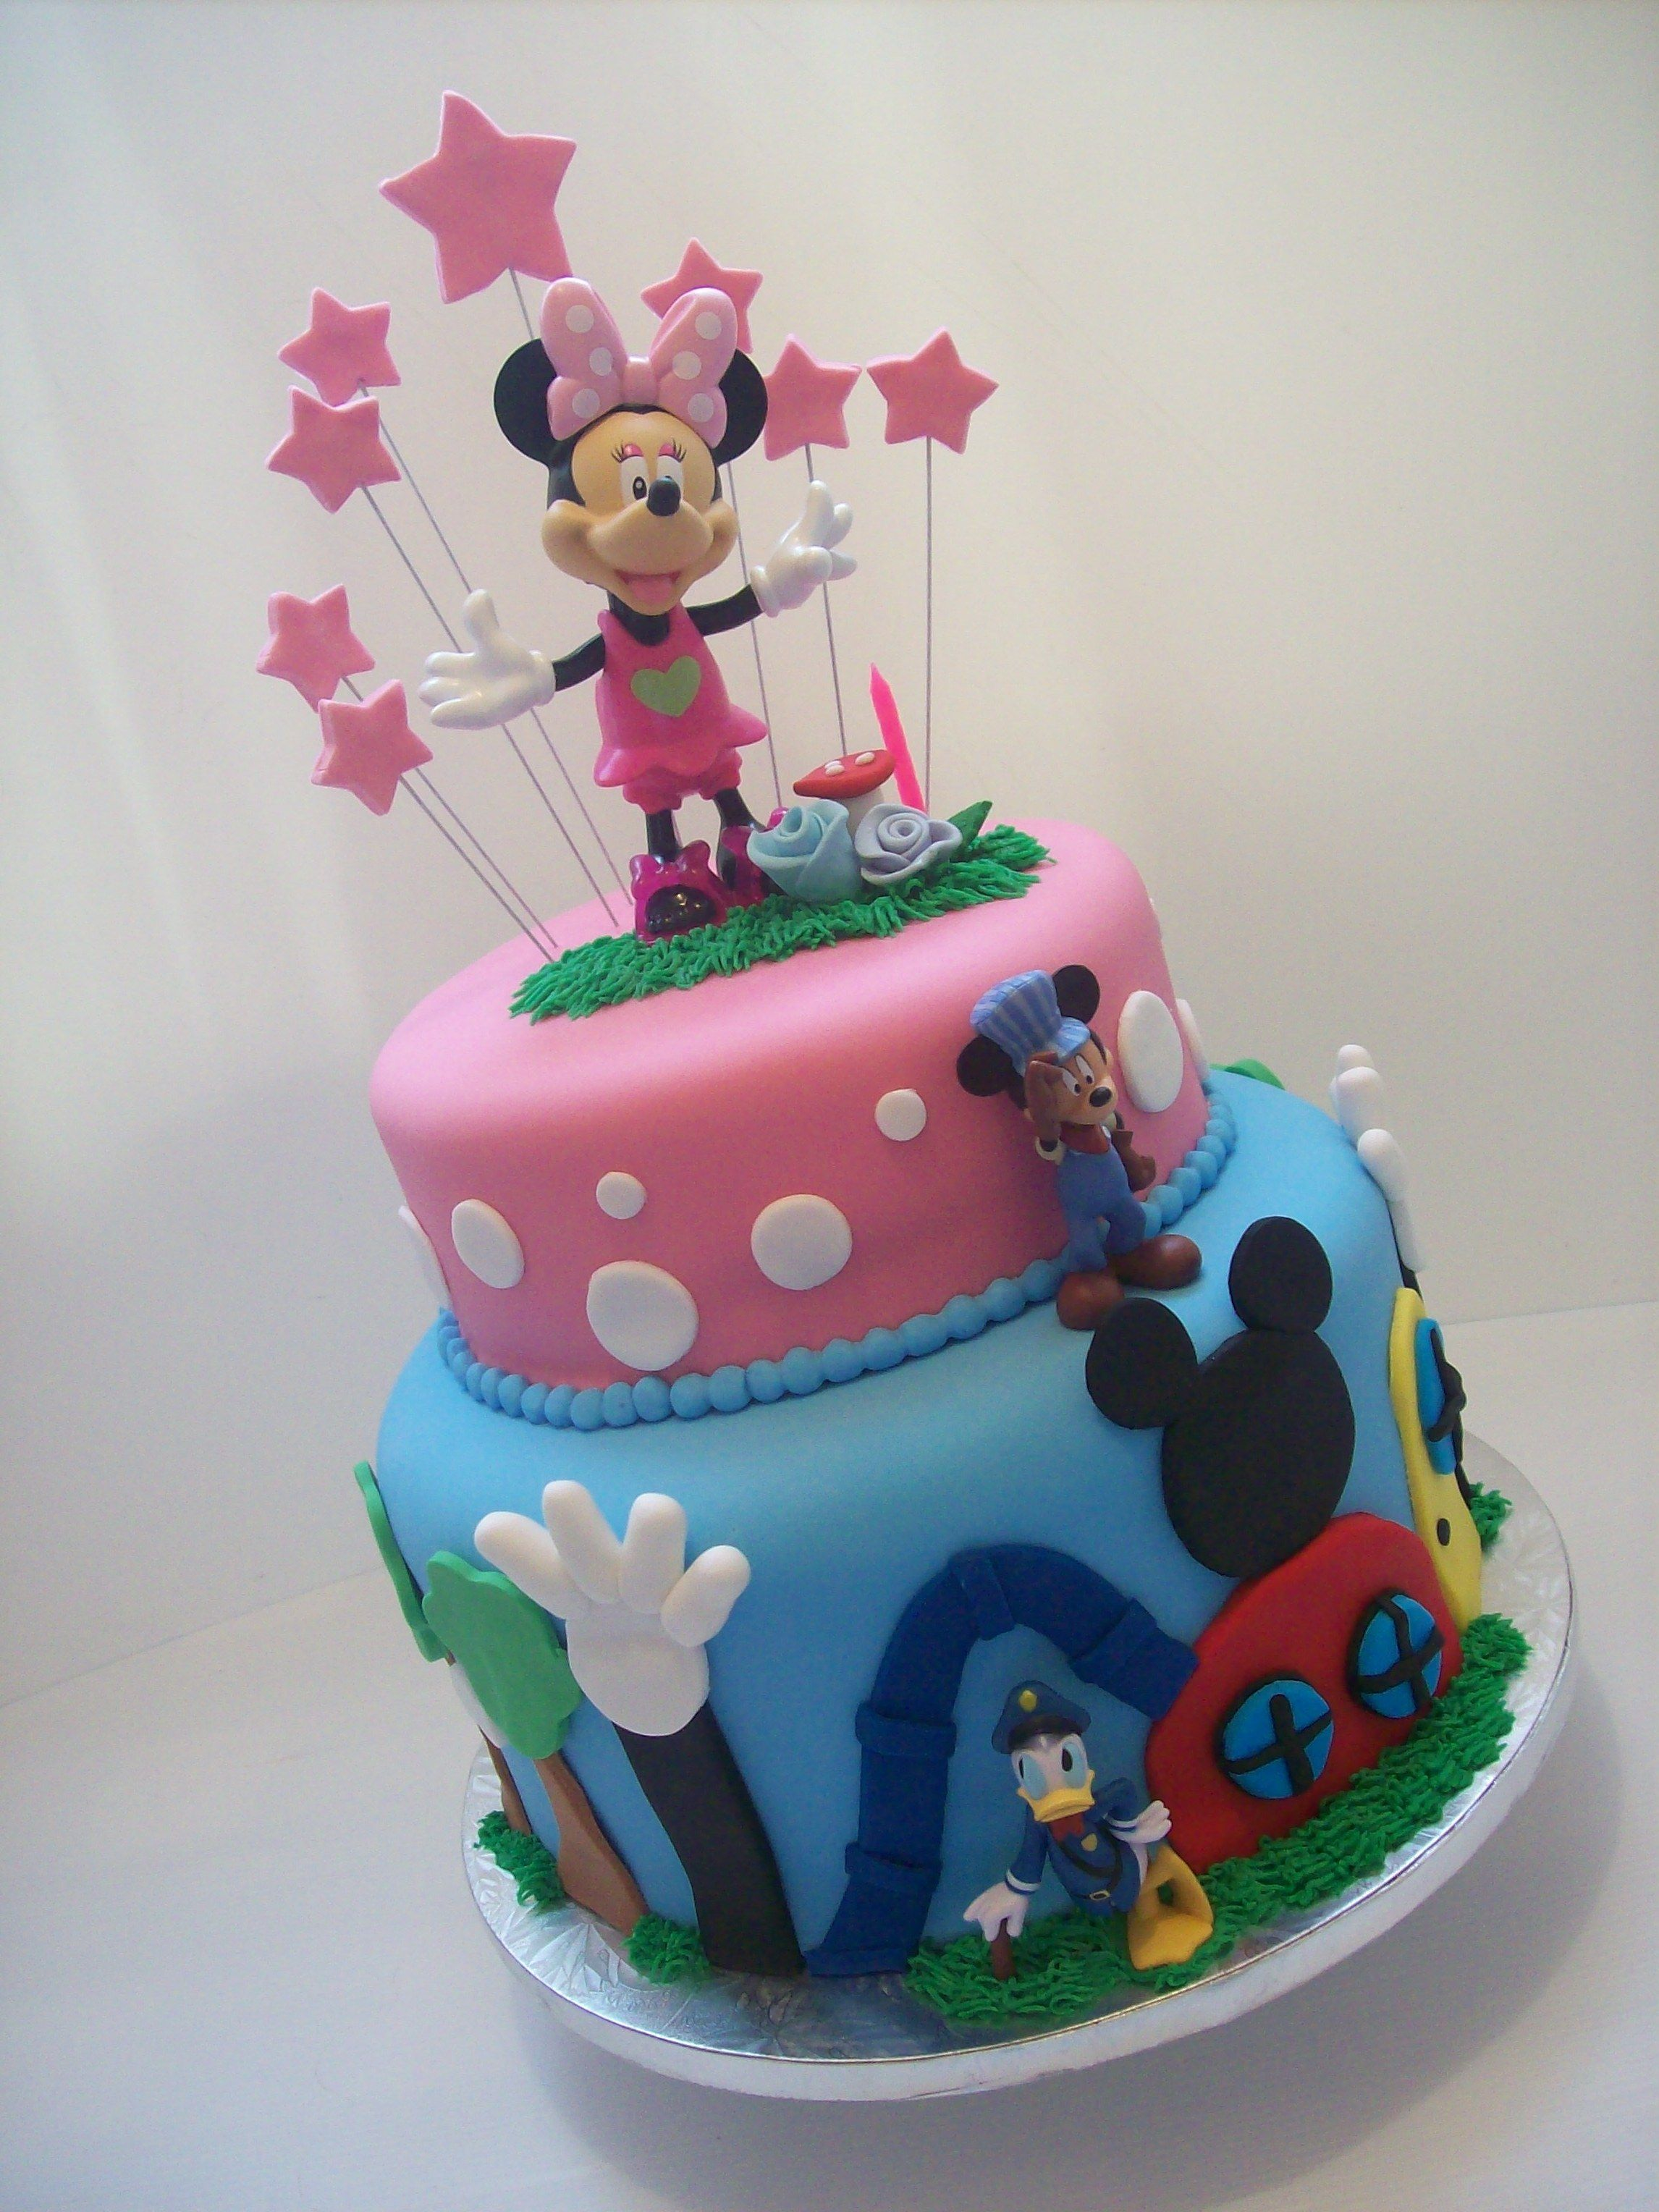 Minnie Mouse cake Auckland caters for 80 coffee serves 395